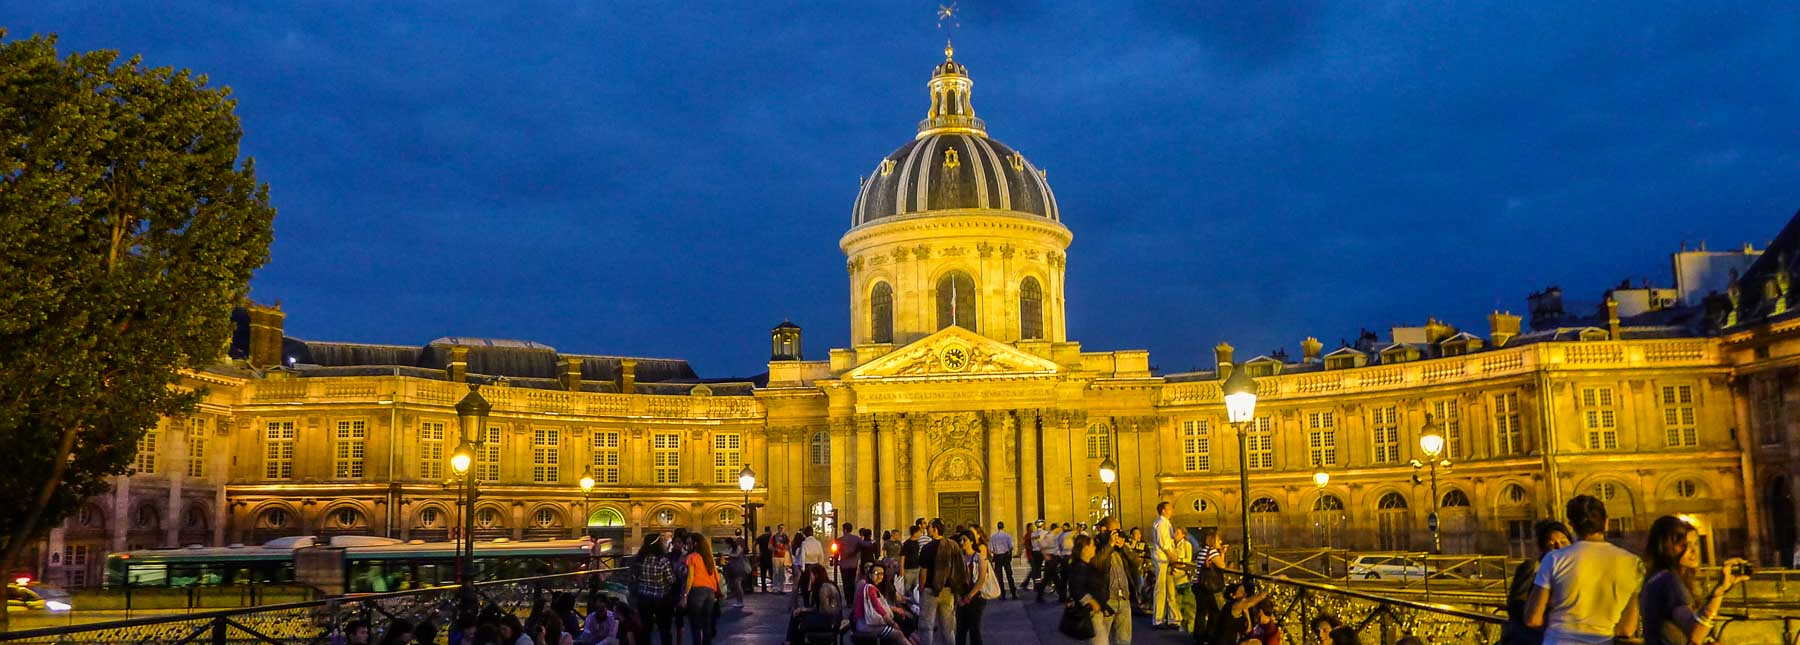 75 Tips for a Great Vacation in Paris